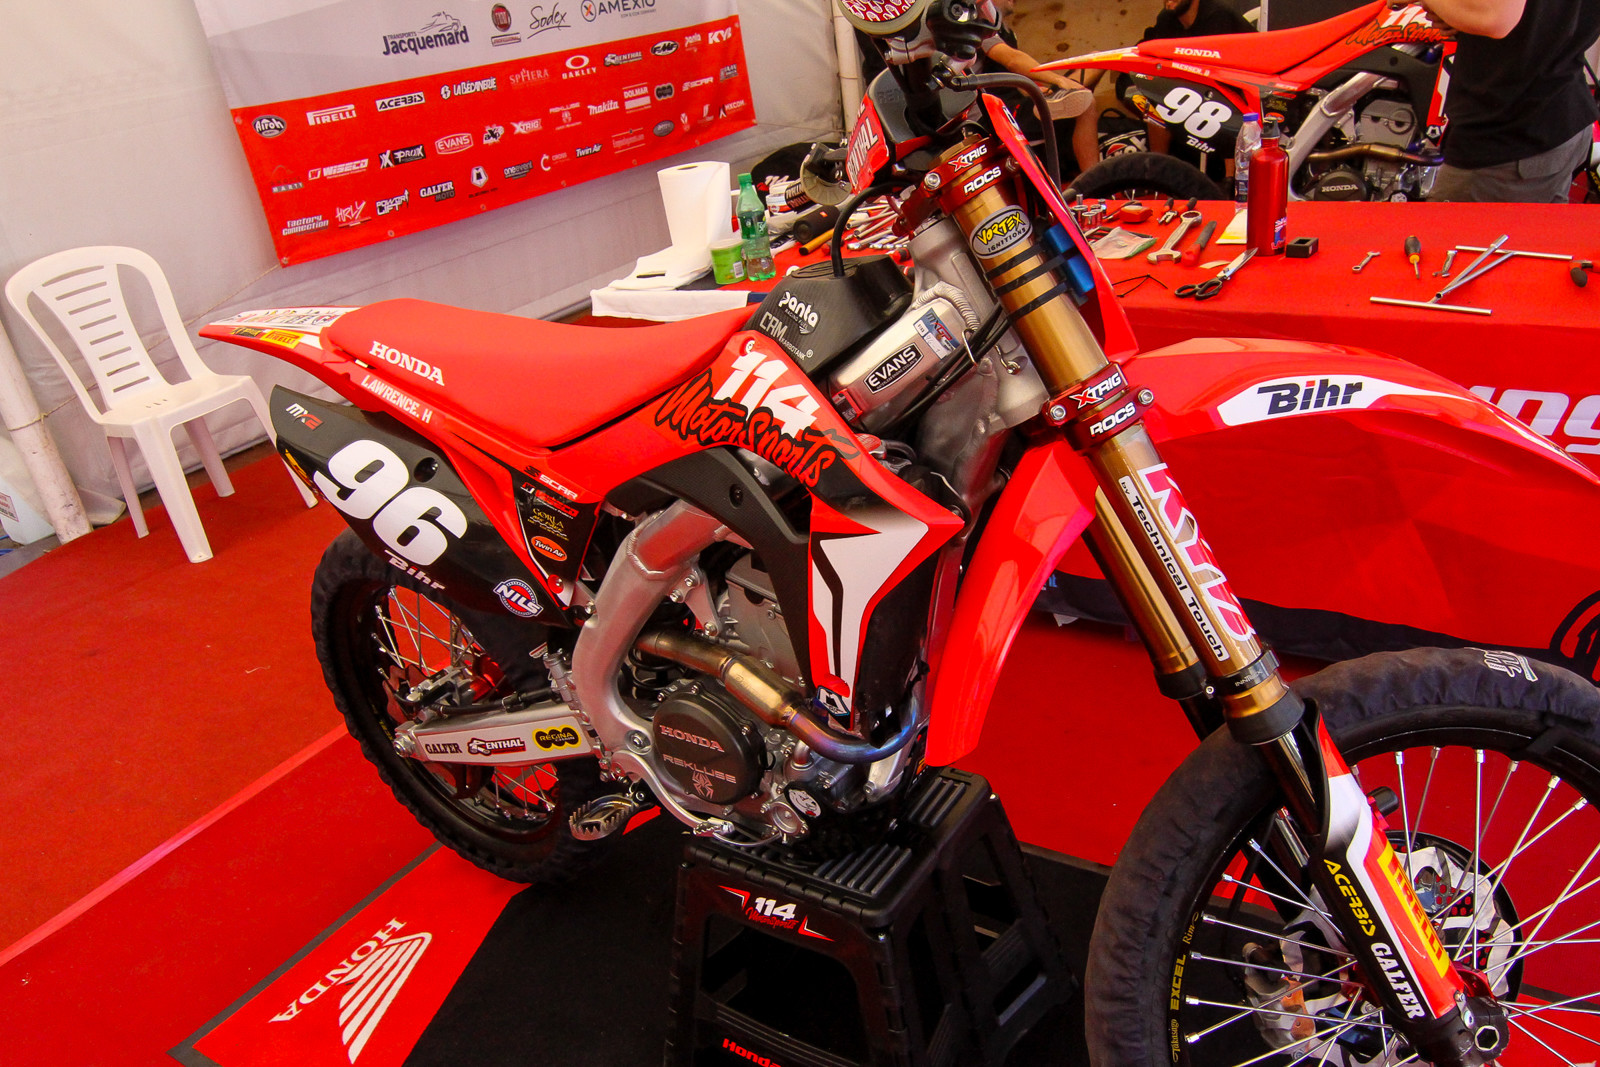 114 Motorsports Honda is a new team for this year, featuring MX2 riders Hunter Lawrence and Bas Vaessan, with prior women's world champ Livia Lancelot managing the effort. The team is on the latest CRF250R with some engine help from the US Geico team along with support from Rekluse, FMF, KYB/Technical Touch, and more. Expect a deeper look into this machine at the next round.